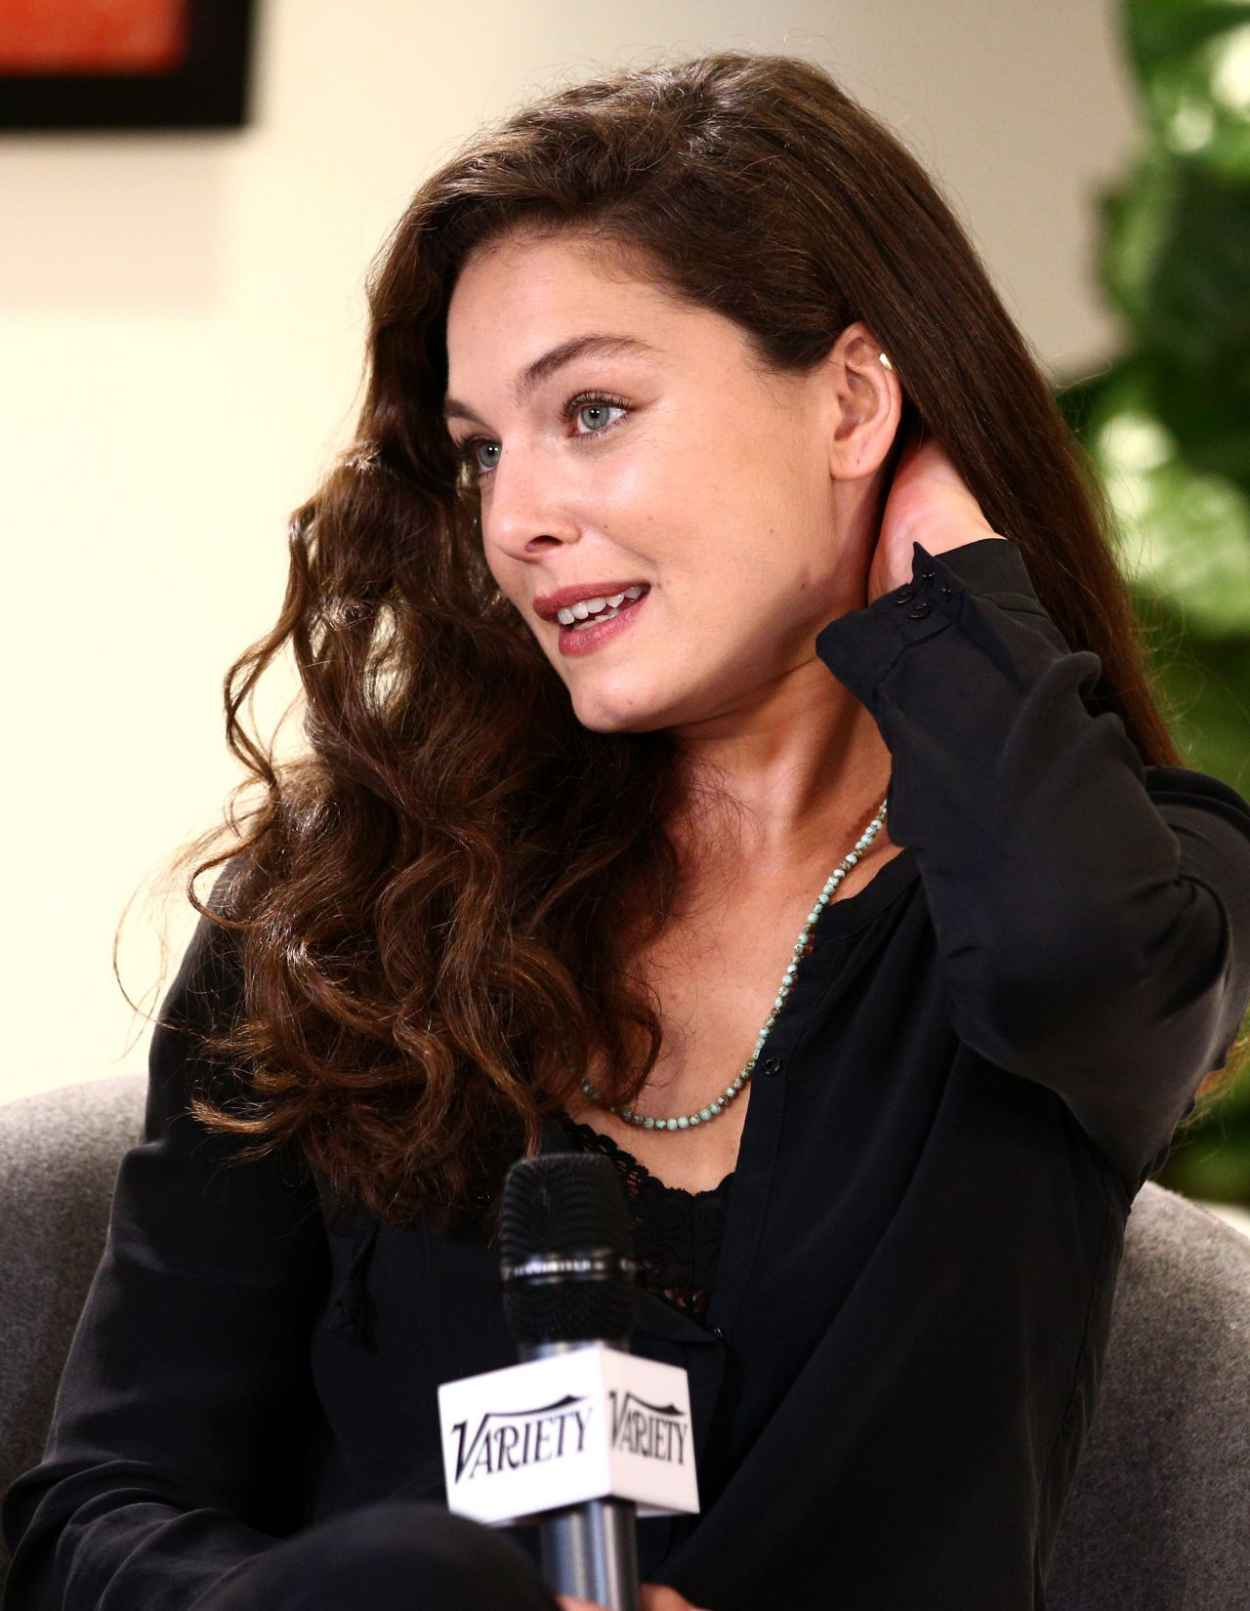 Alexa Davalos at Variety Awards Studio in West Hollywood - November 2015-5